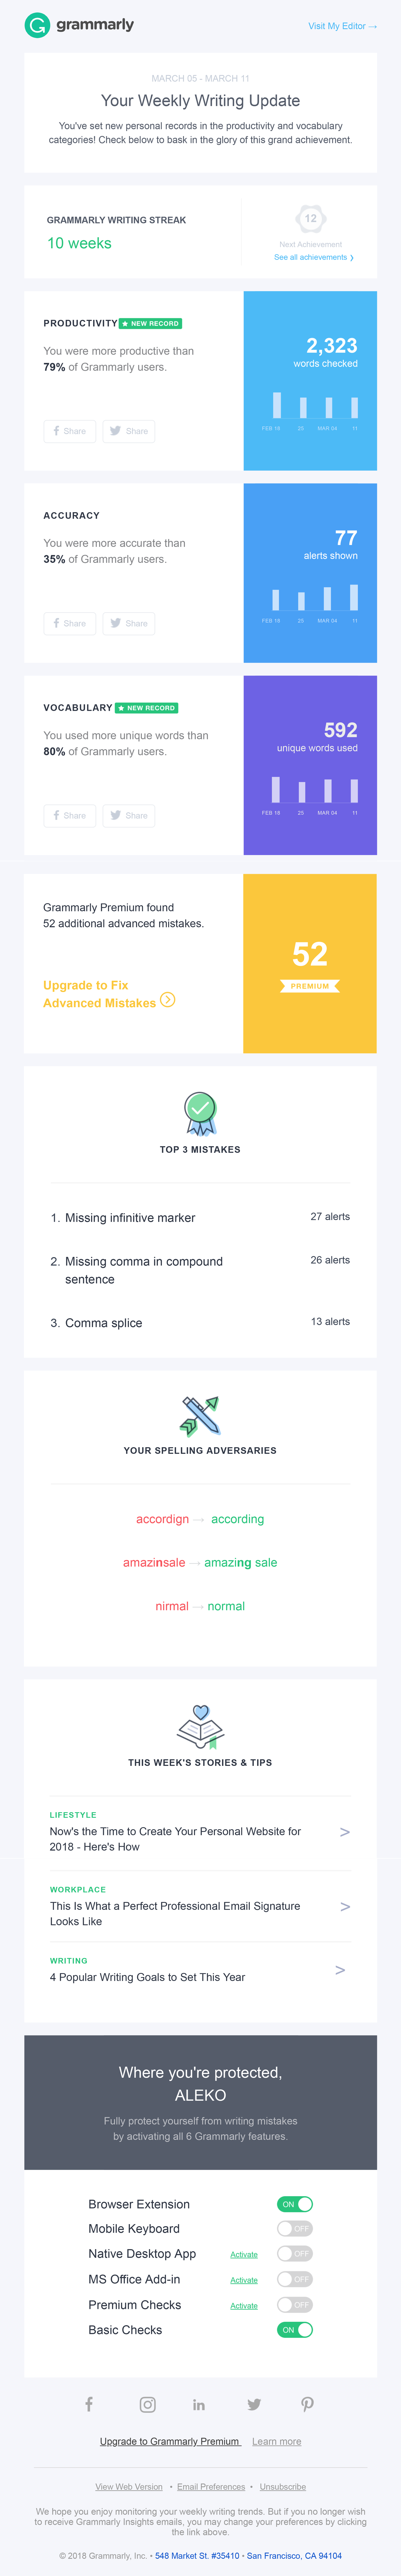 Grammarly email design with graphs and details Weekly